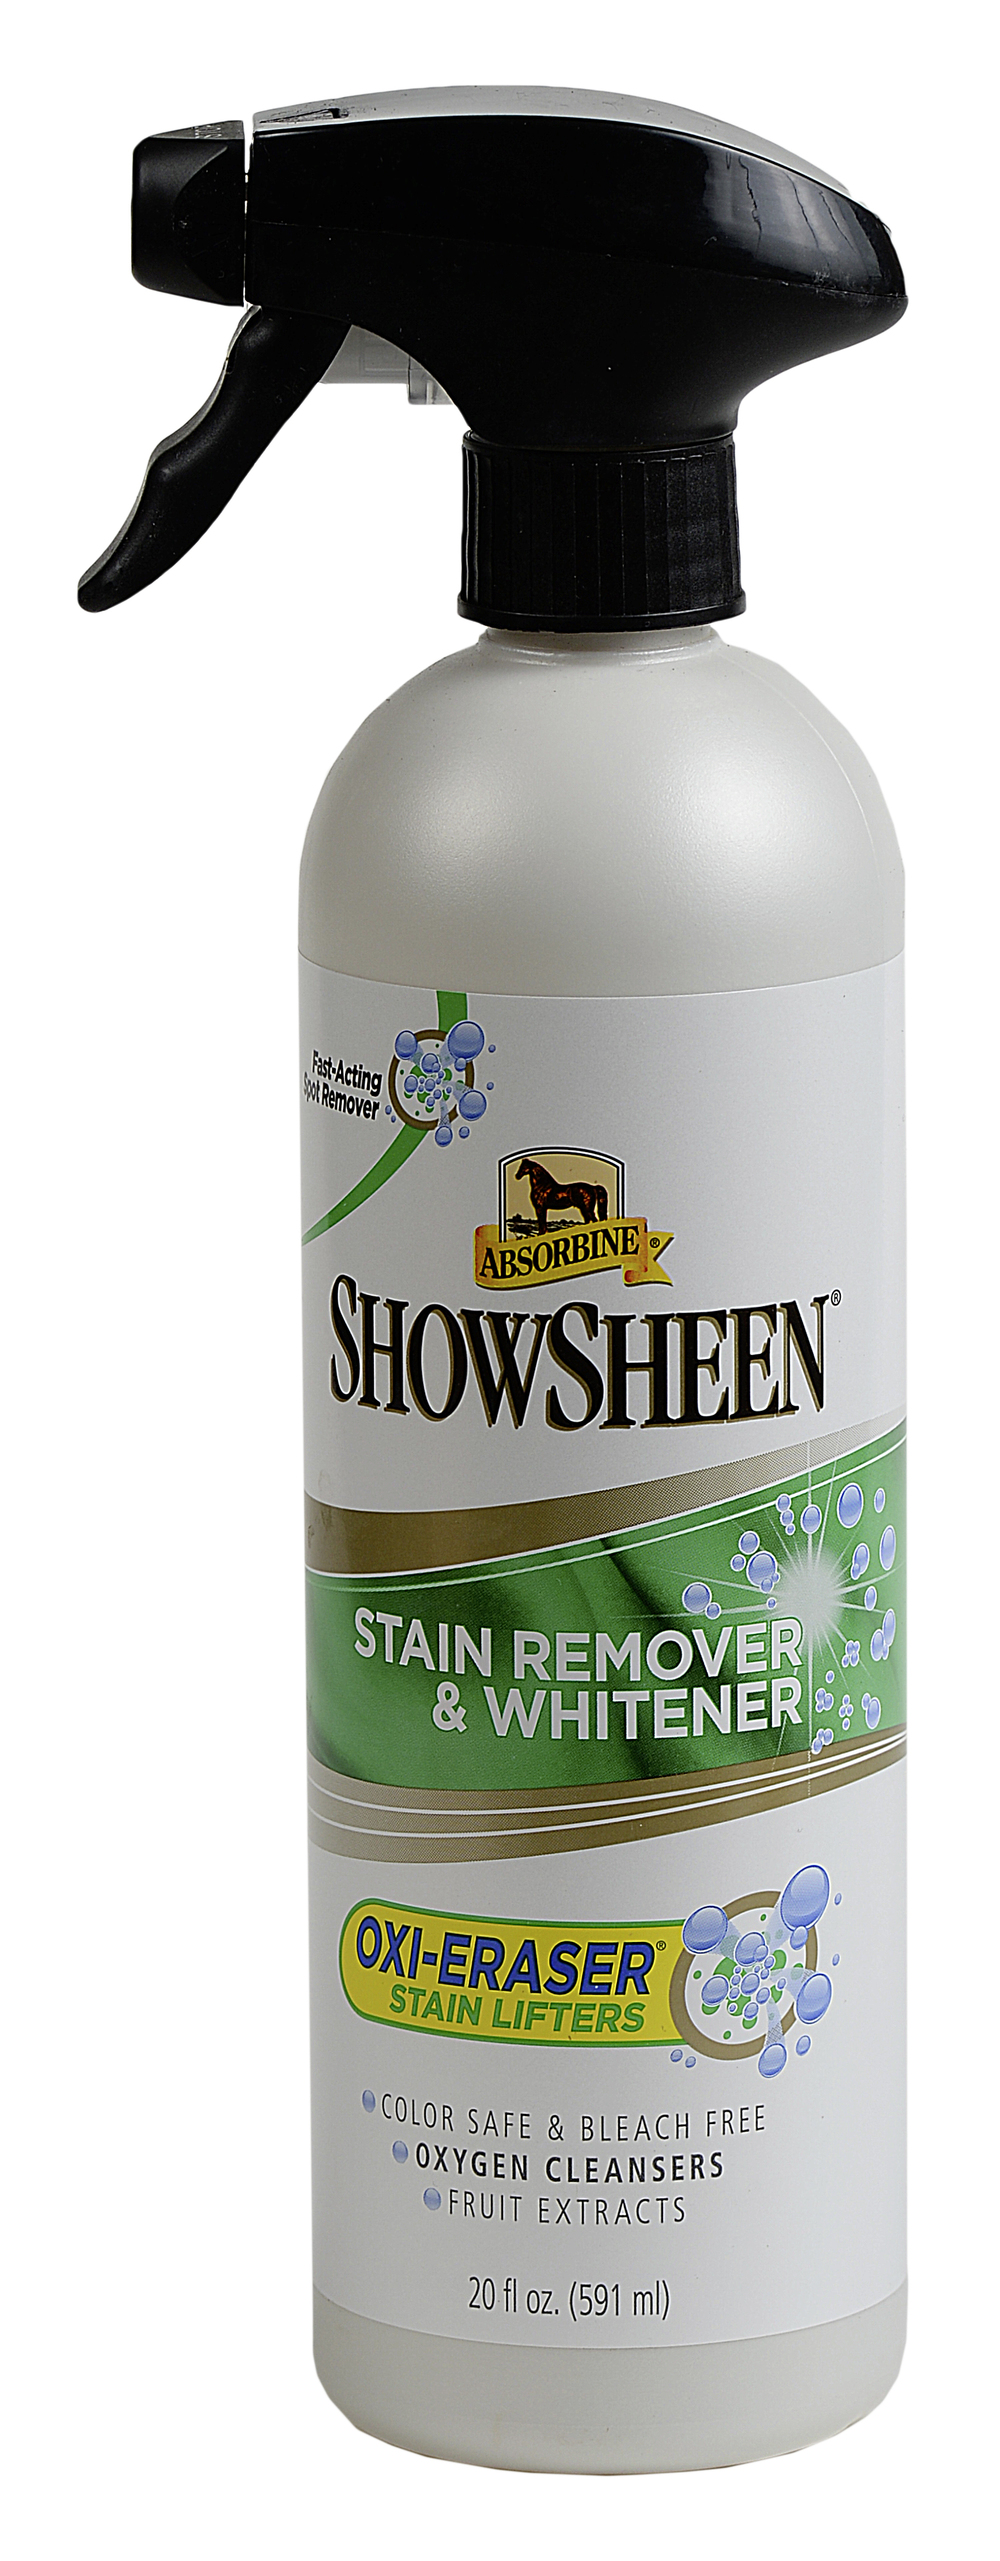 Absorbine ShowSheen Stain Remover and Whitener won our Gear Guide test in November 2015.